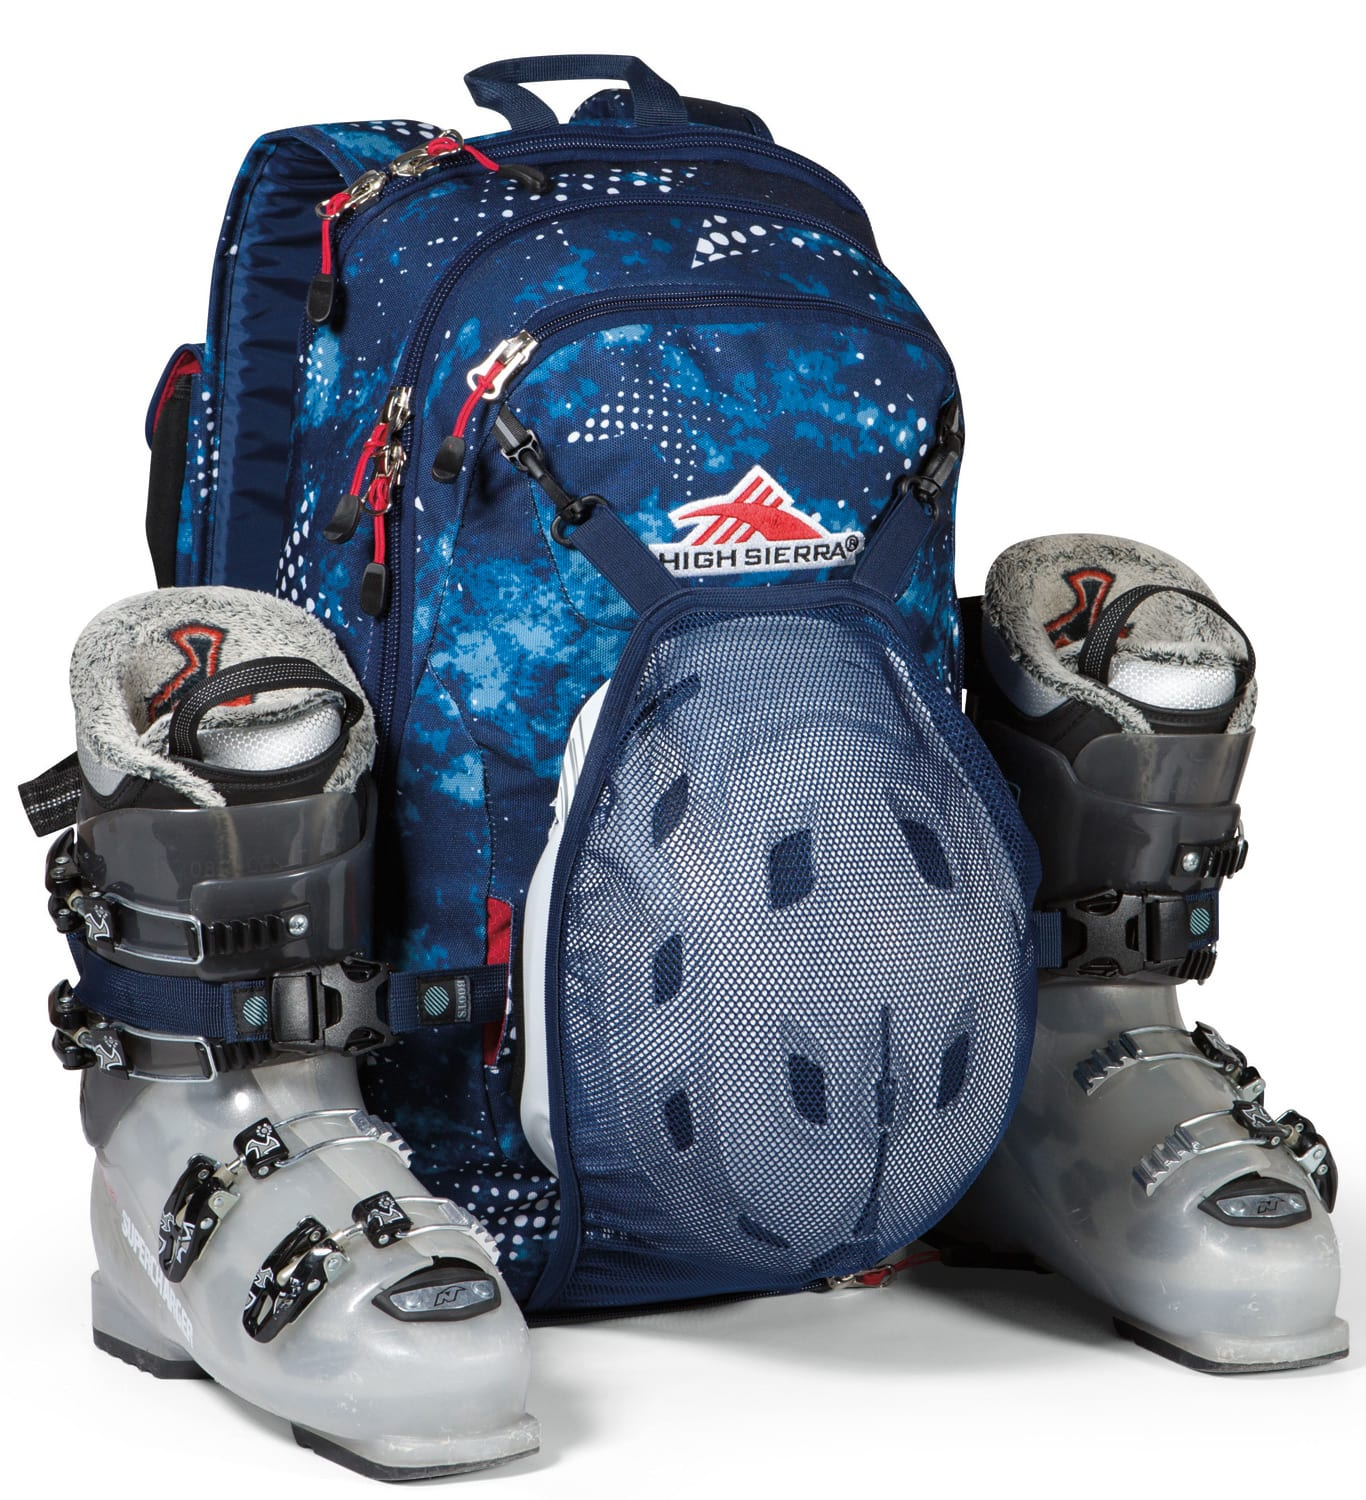 902c0fbe63 High Sierra U.S. Ski Team Backpack - thumbnail 2